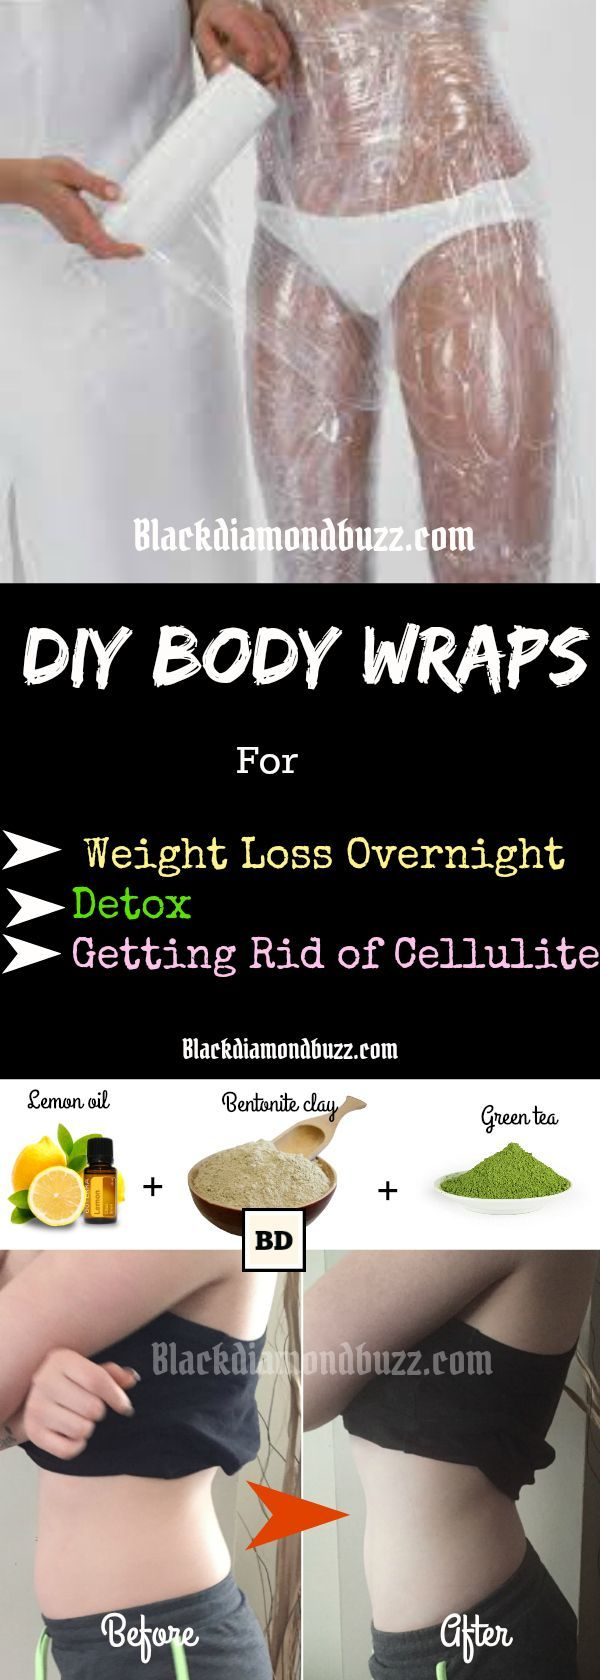 DIY Body Wraps - Do you want to get rid of body fat and lose some weight? If yes, try this diy body wraps for weight loss, detox, and getting rid of cellulite fast. It is not expensive and you can make it at home easy  with some active ingredient like, apple cider vinegar,lemon oil, bentonite, green tea and seaweed